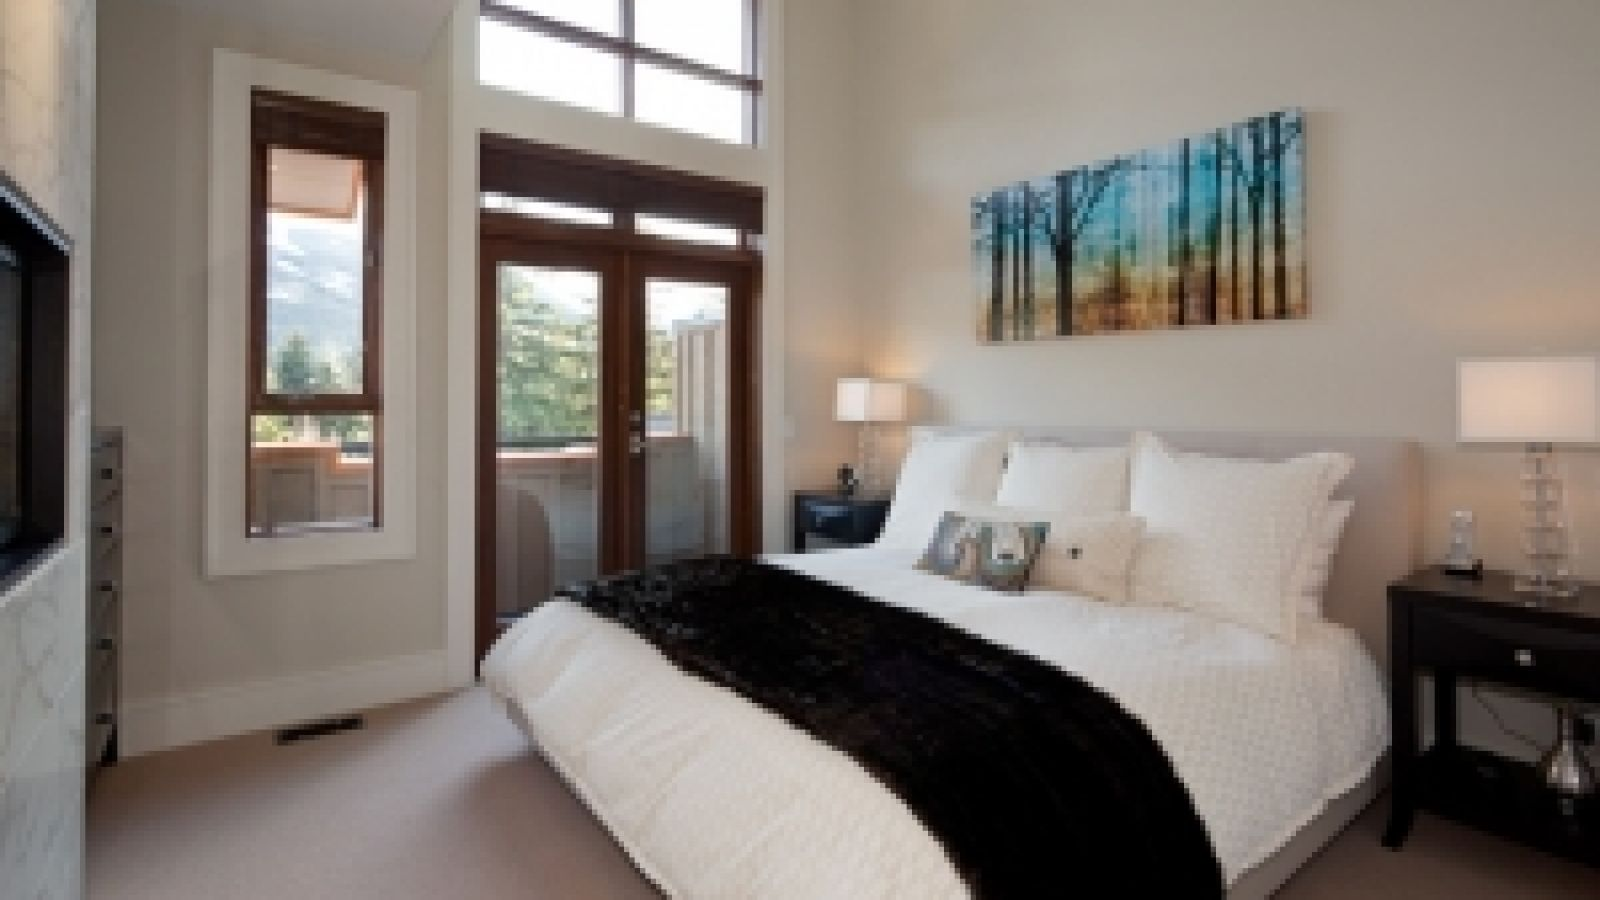 Fitzsimmons Walk Luxury Rental Homes - Whistler golf packages